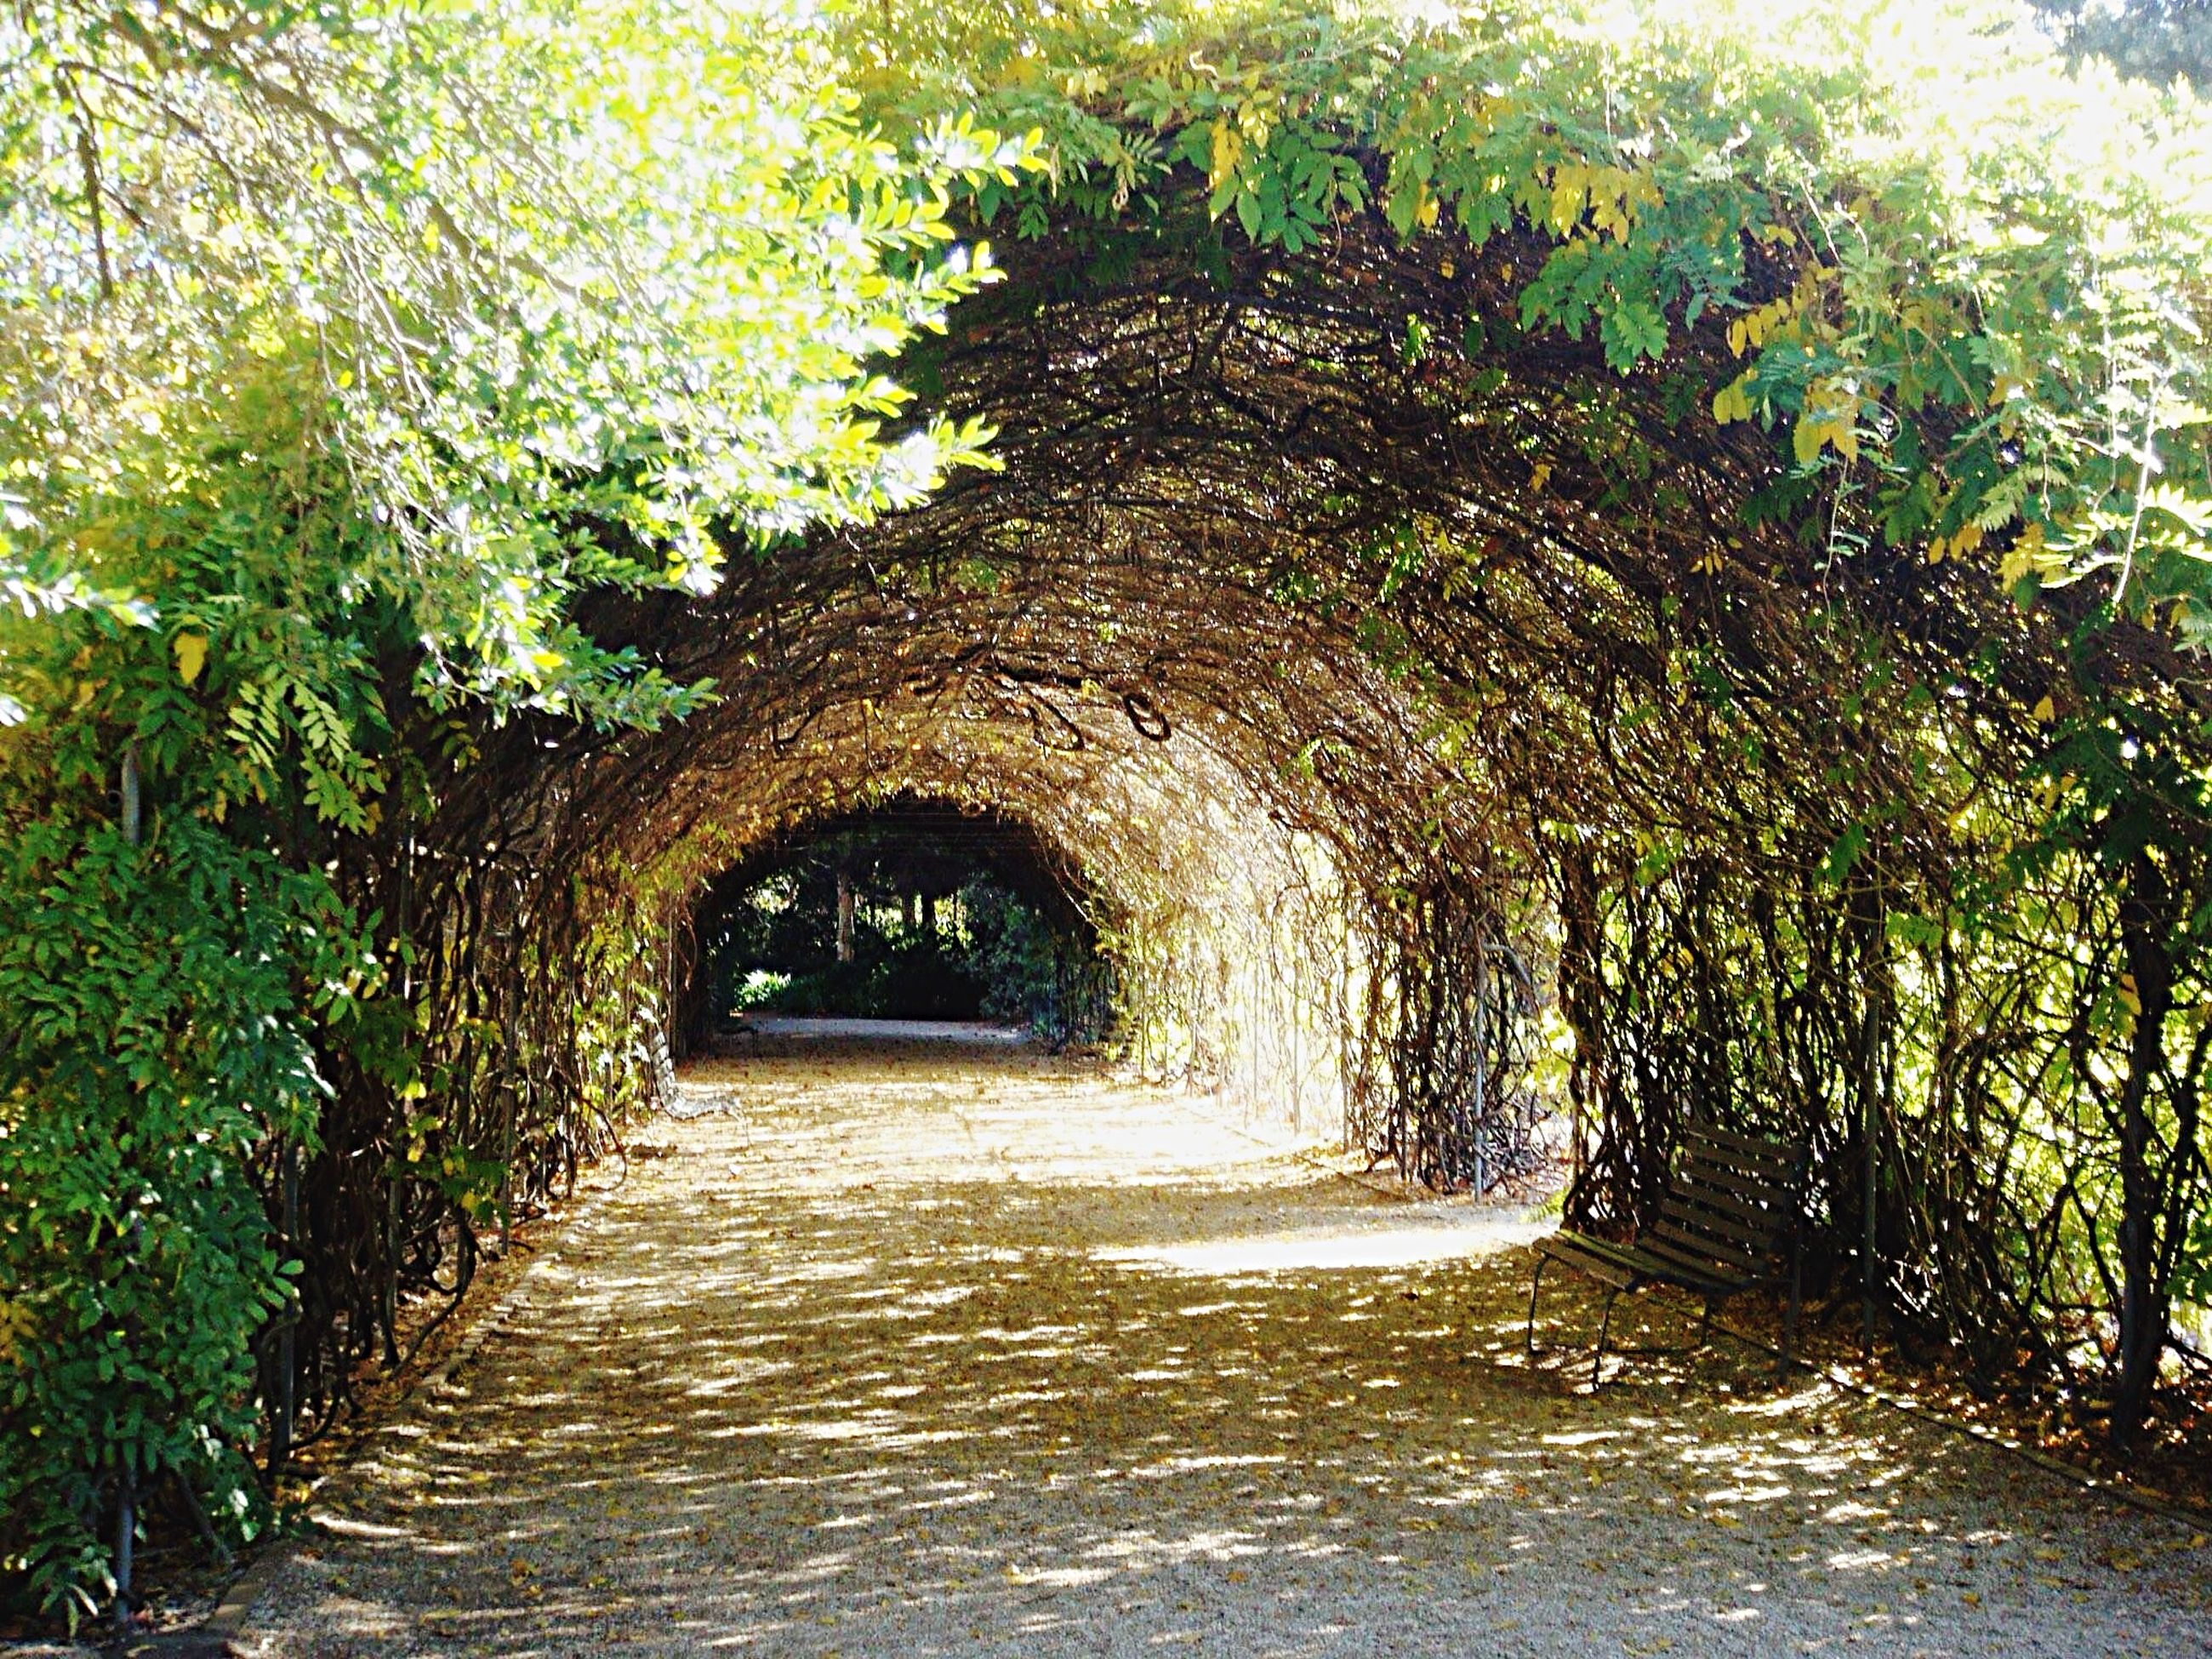 the way forward, arch, diminishing perspective, tree, vanishing point, tunnel, archway, footpath, built structure, nature, walkway, growth, pathway, narrow, tranquility, day, architecture, plant, green color, no people